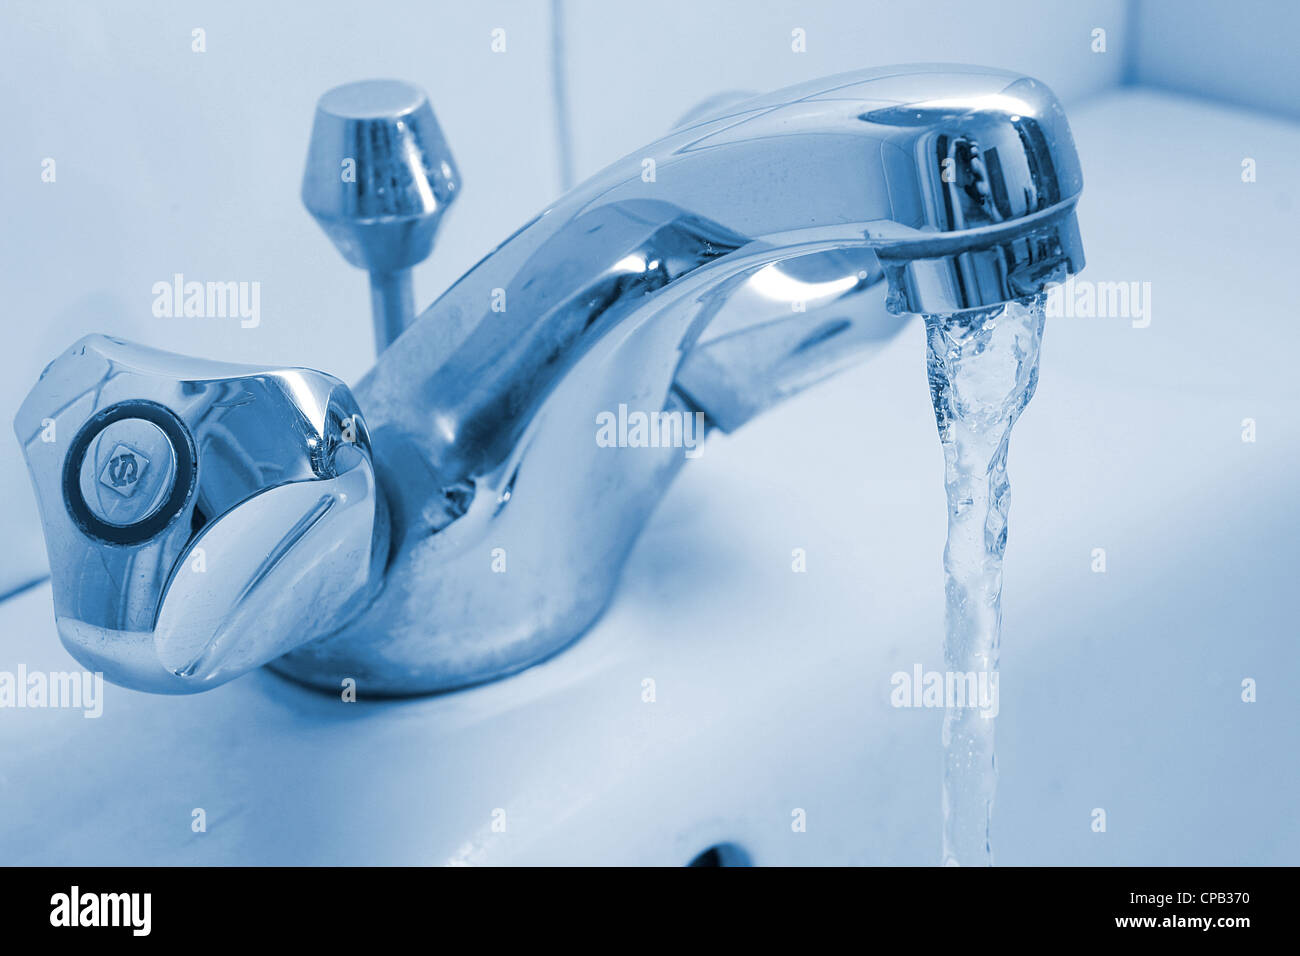 Running water from a faucet - Stock Image